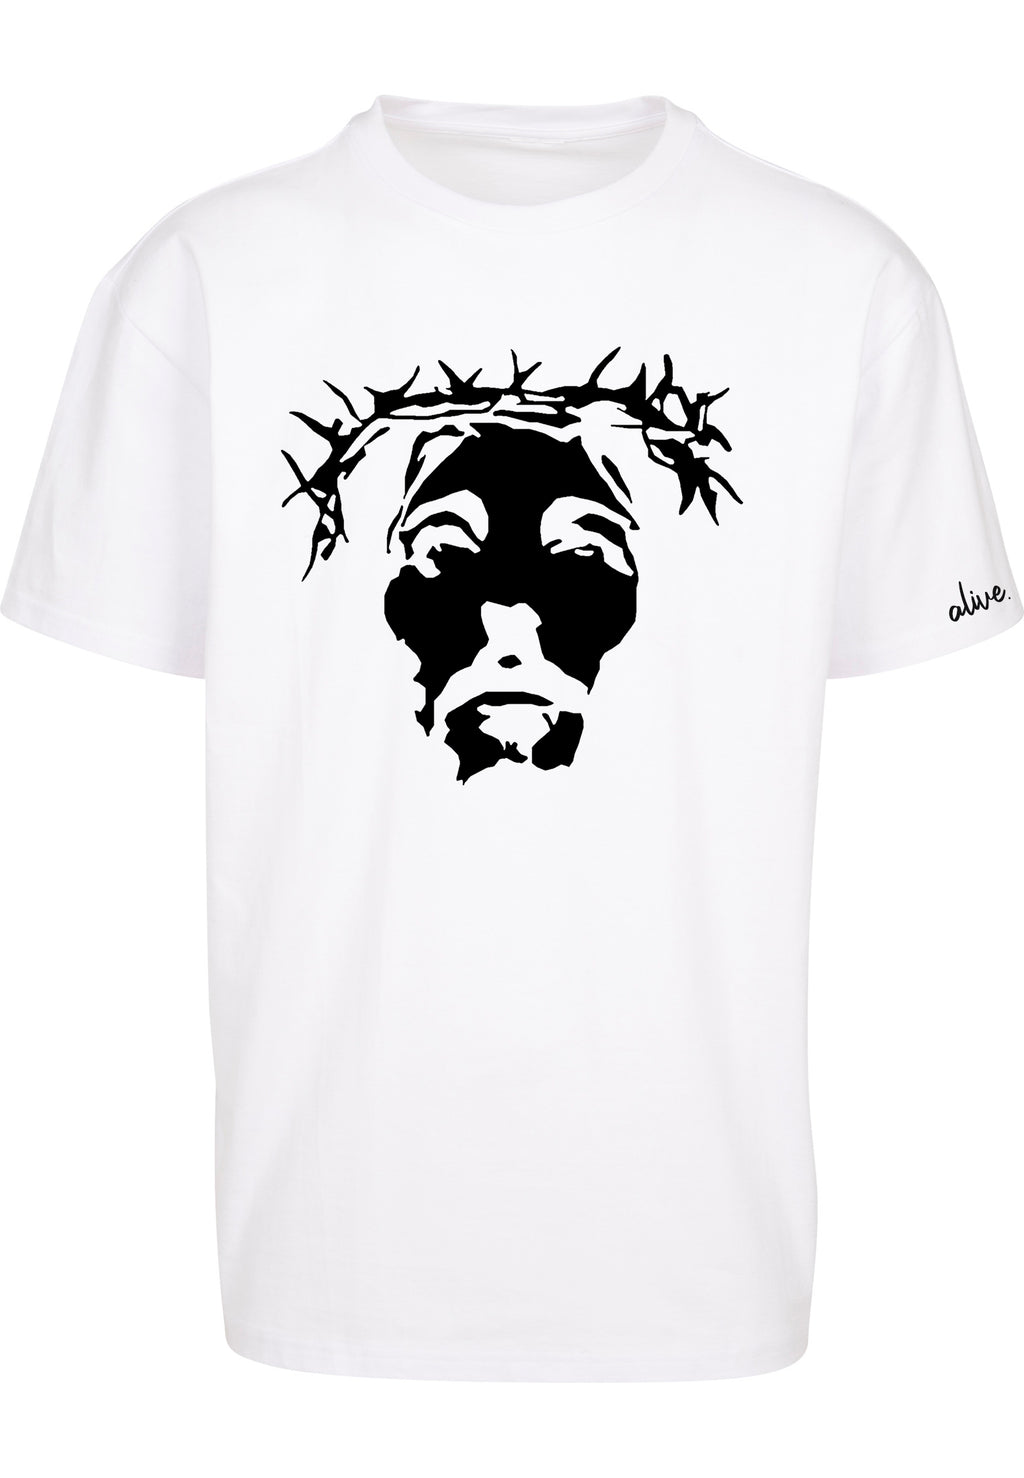 THE SAVIOUR Unisex Oversized T-Shirt (White w/ Black)